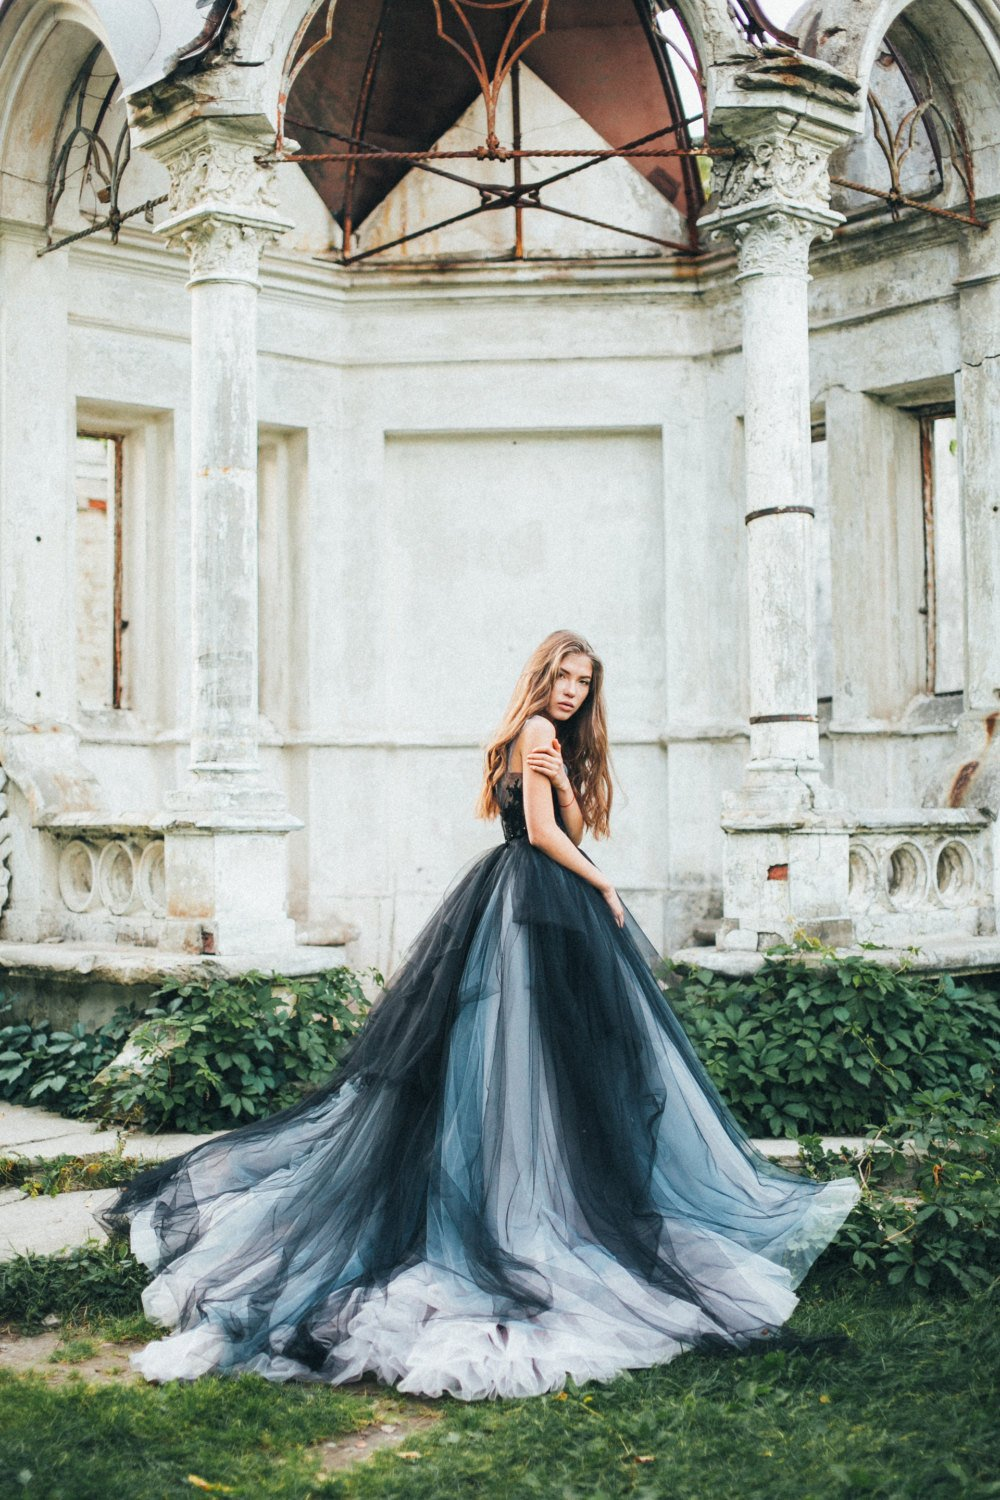 Tulle wedding dress Calypso Nightfall Black bridal gown, lace bridal gown, embroidered lace top, open back dress, ball gown, navy.jpg